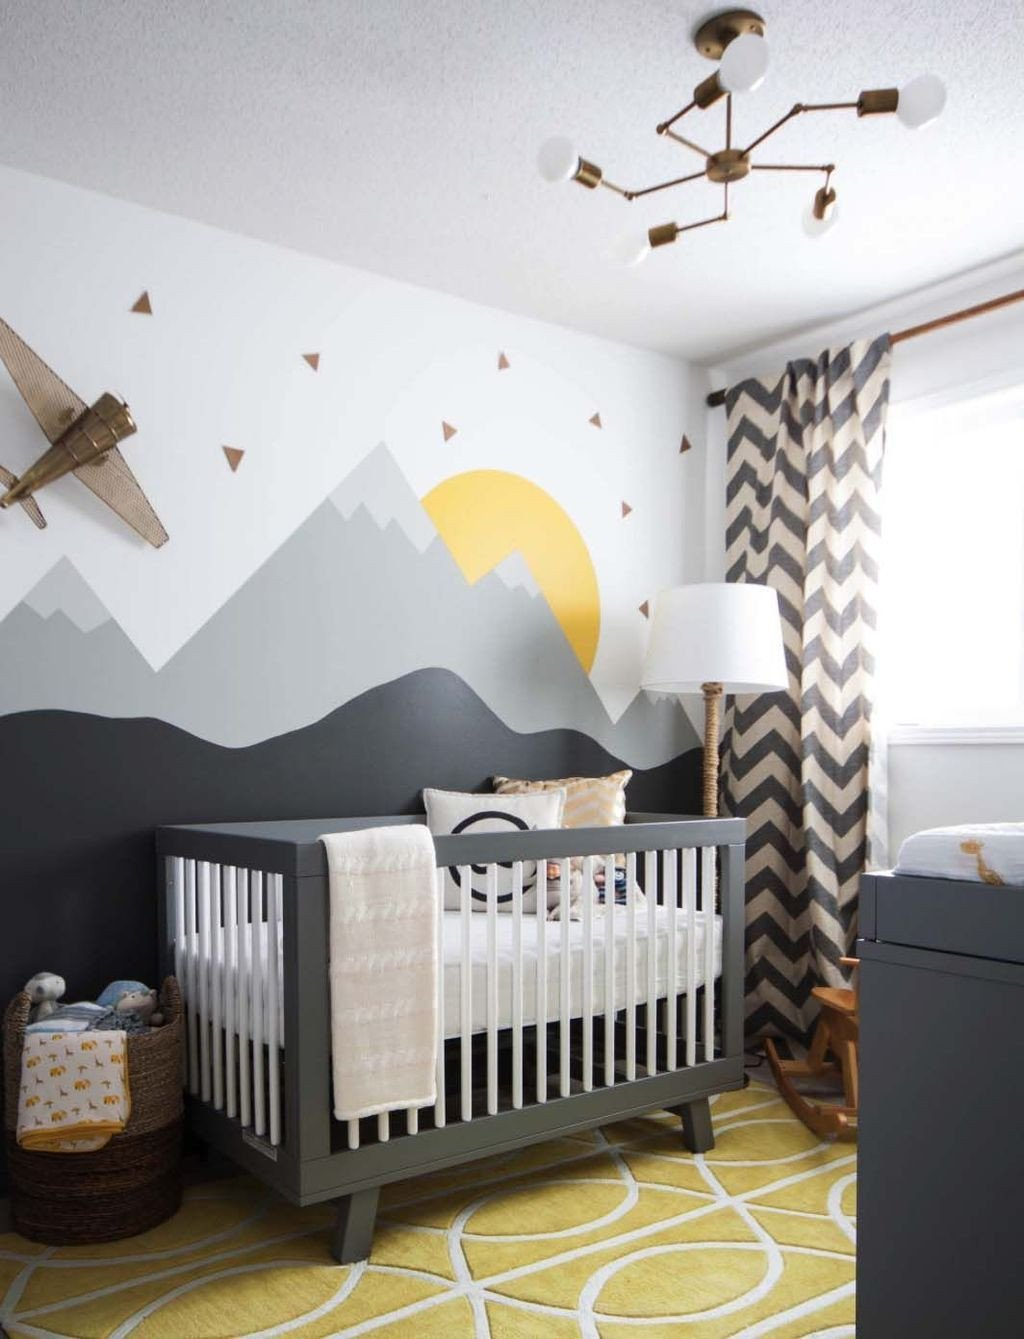 Baby Boy Bedroom Ideas Lovely 48 Artsy Wall Painting Ideas for Your Home